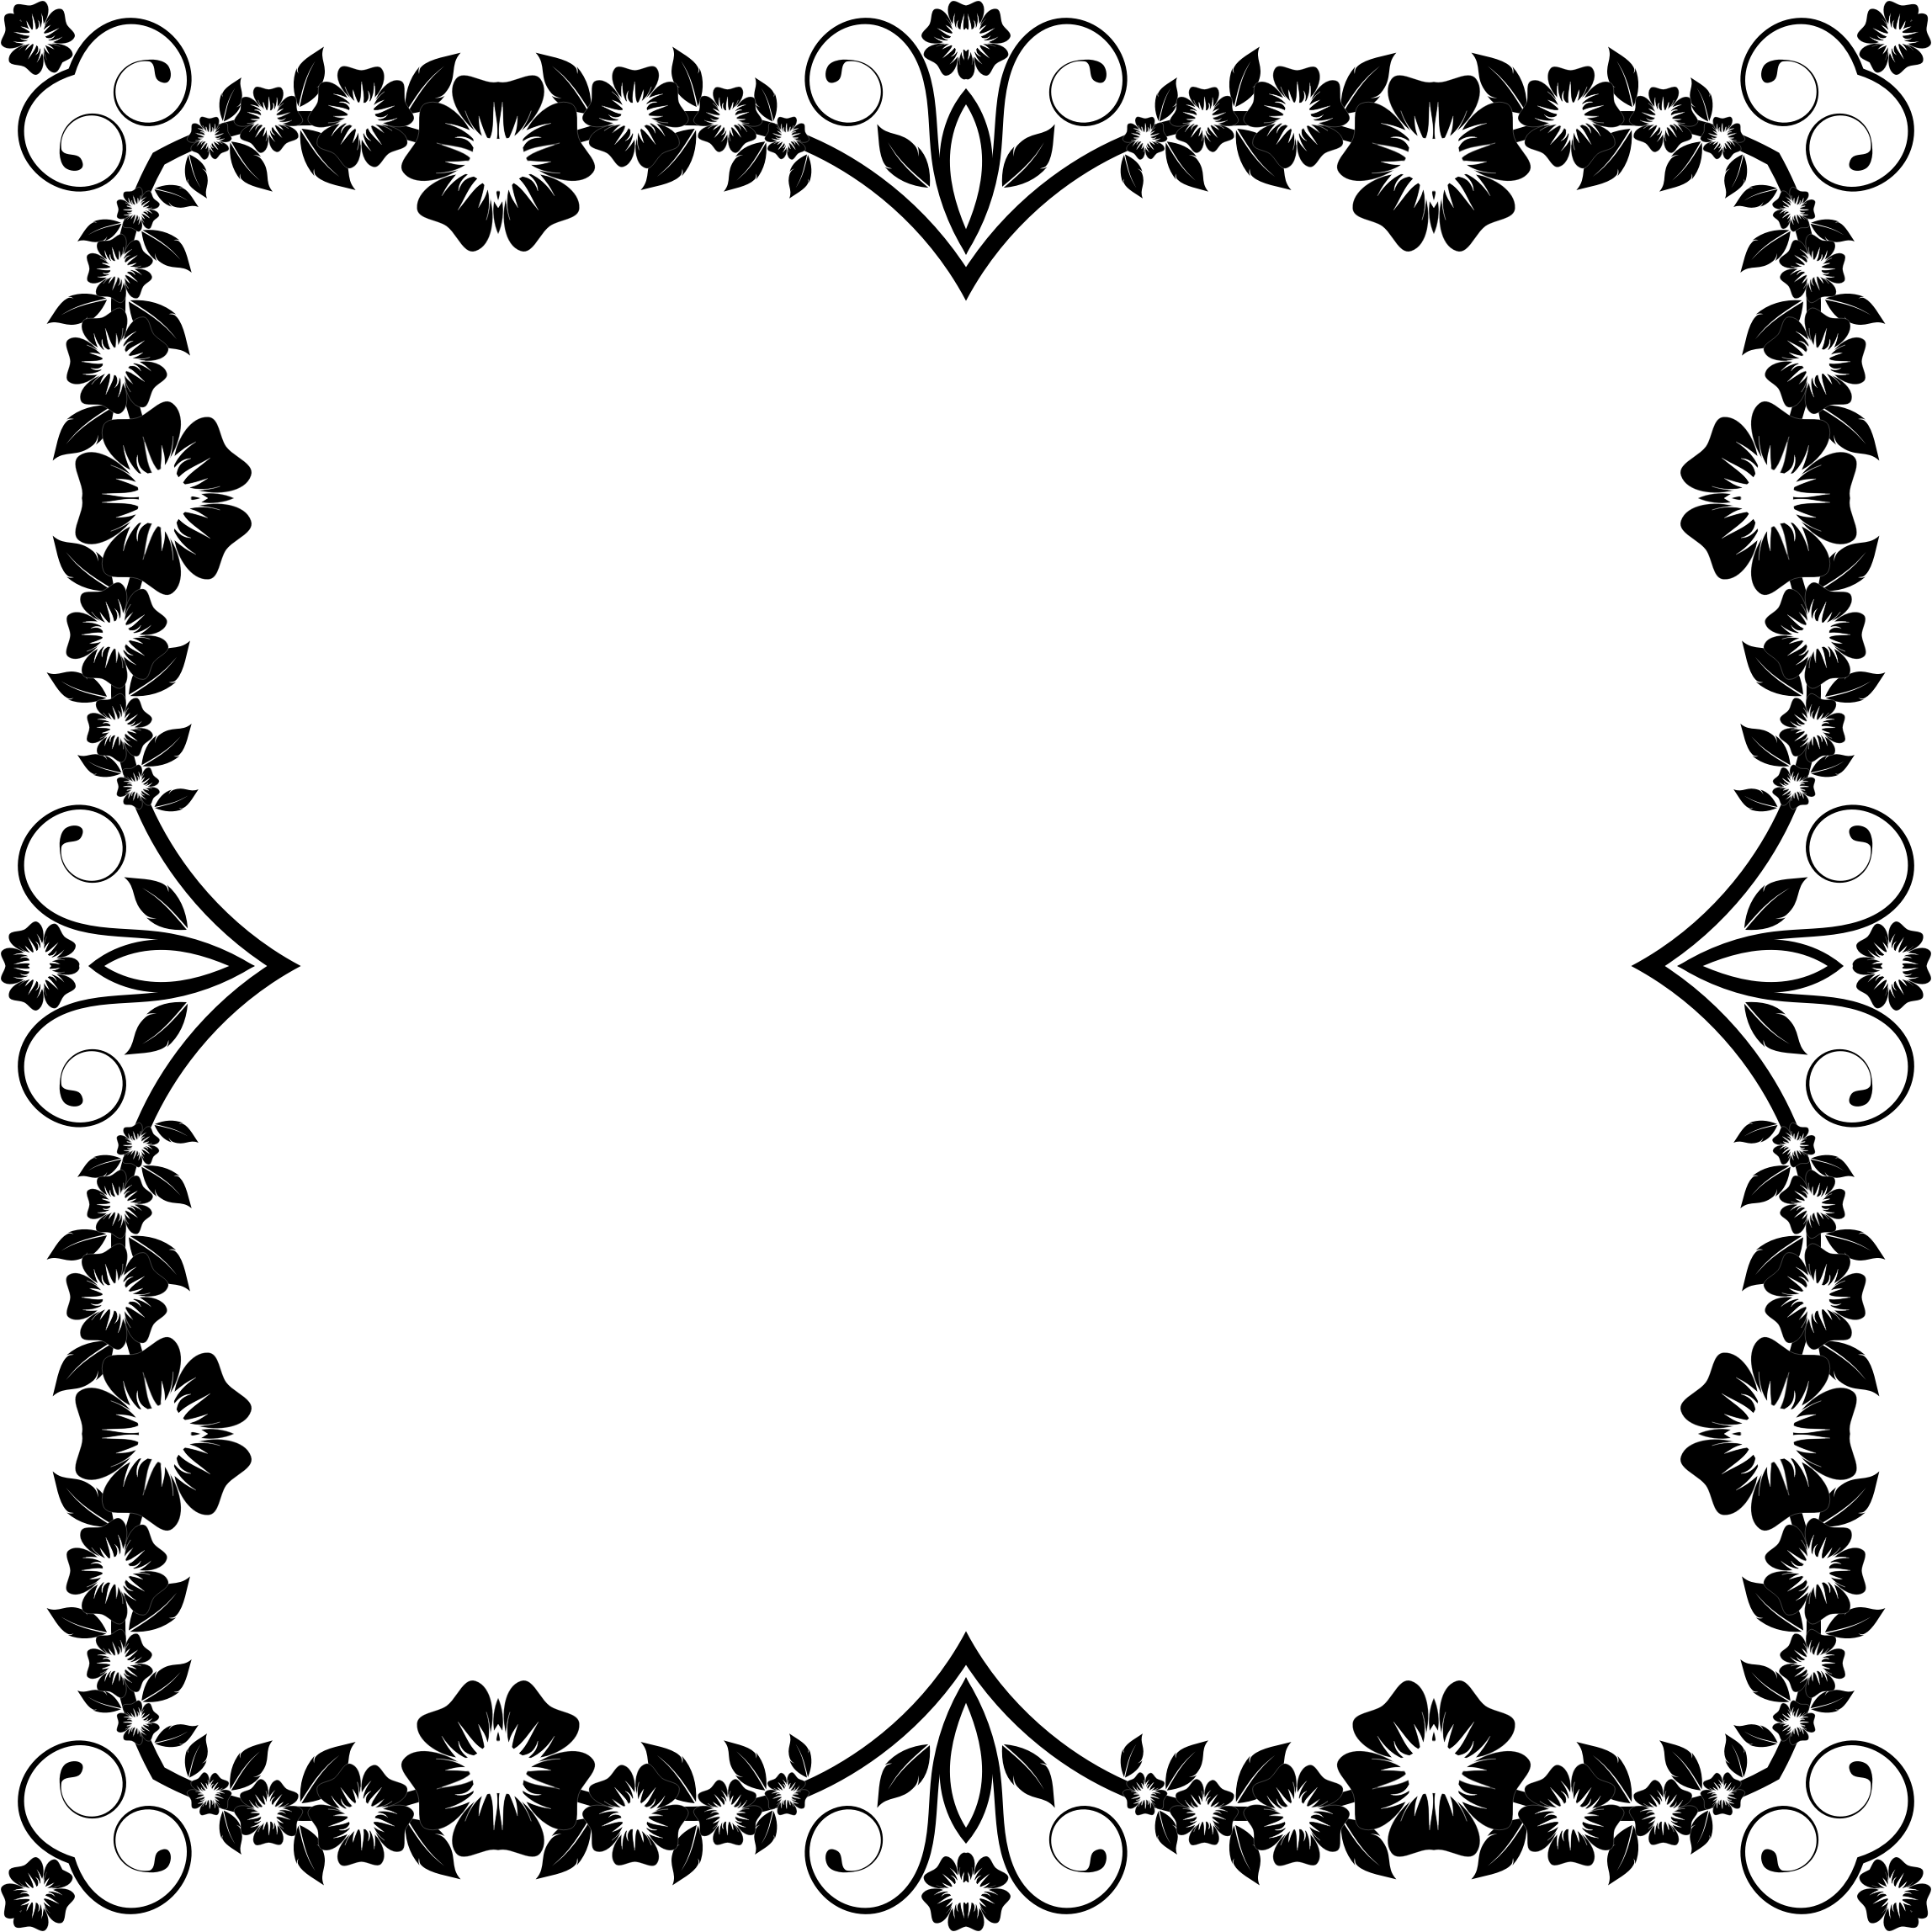 Flower frame clipart black and white picture royalty free library Clipart - Flower Frame Extrapolated 2 picture royalty free library